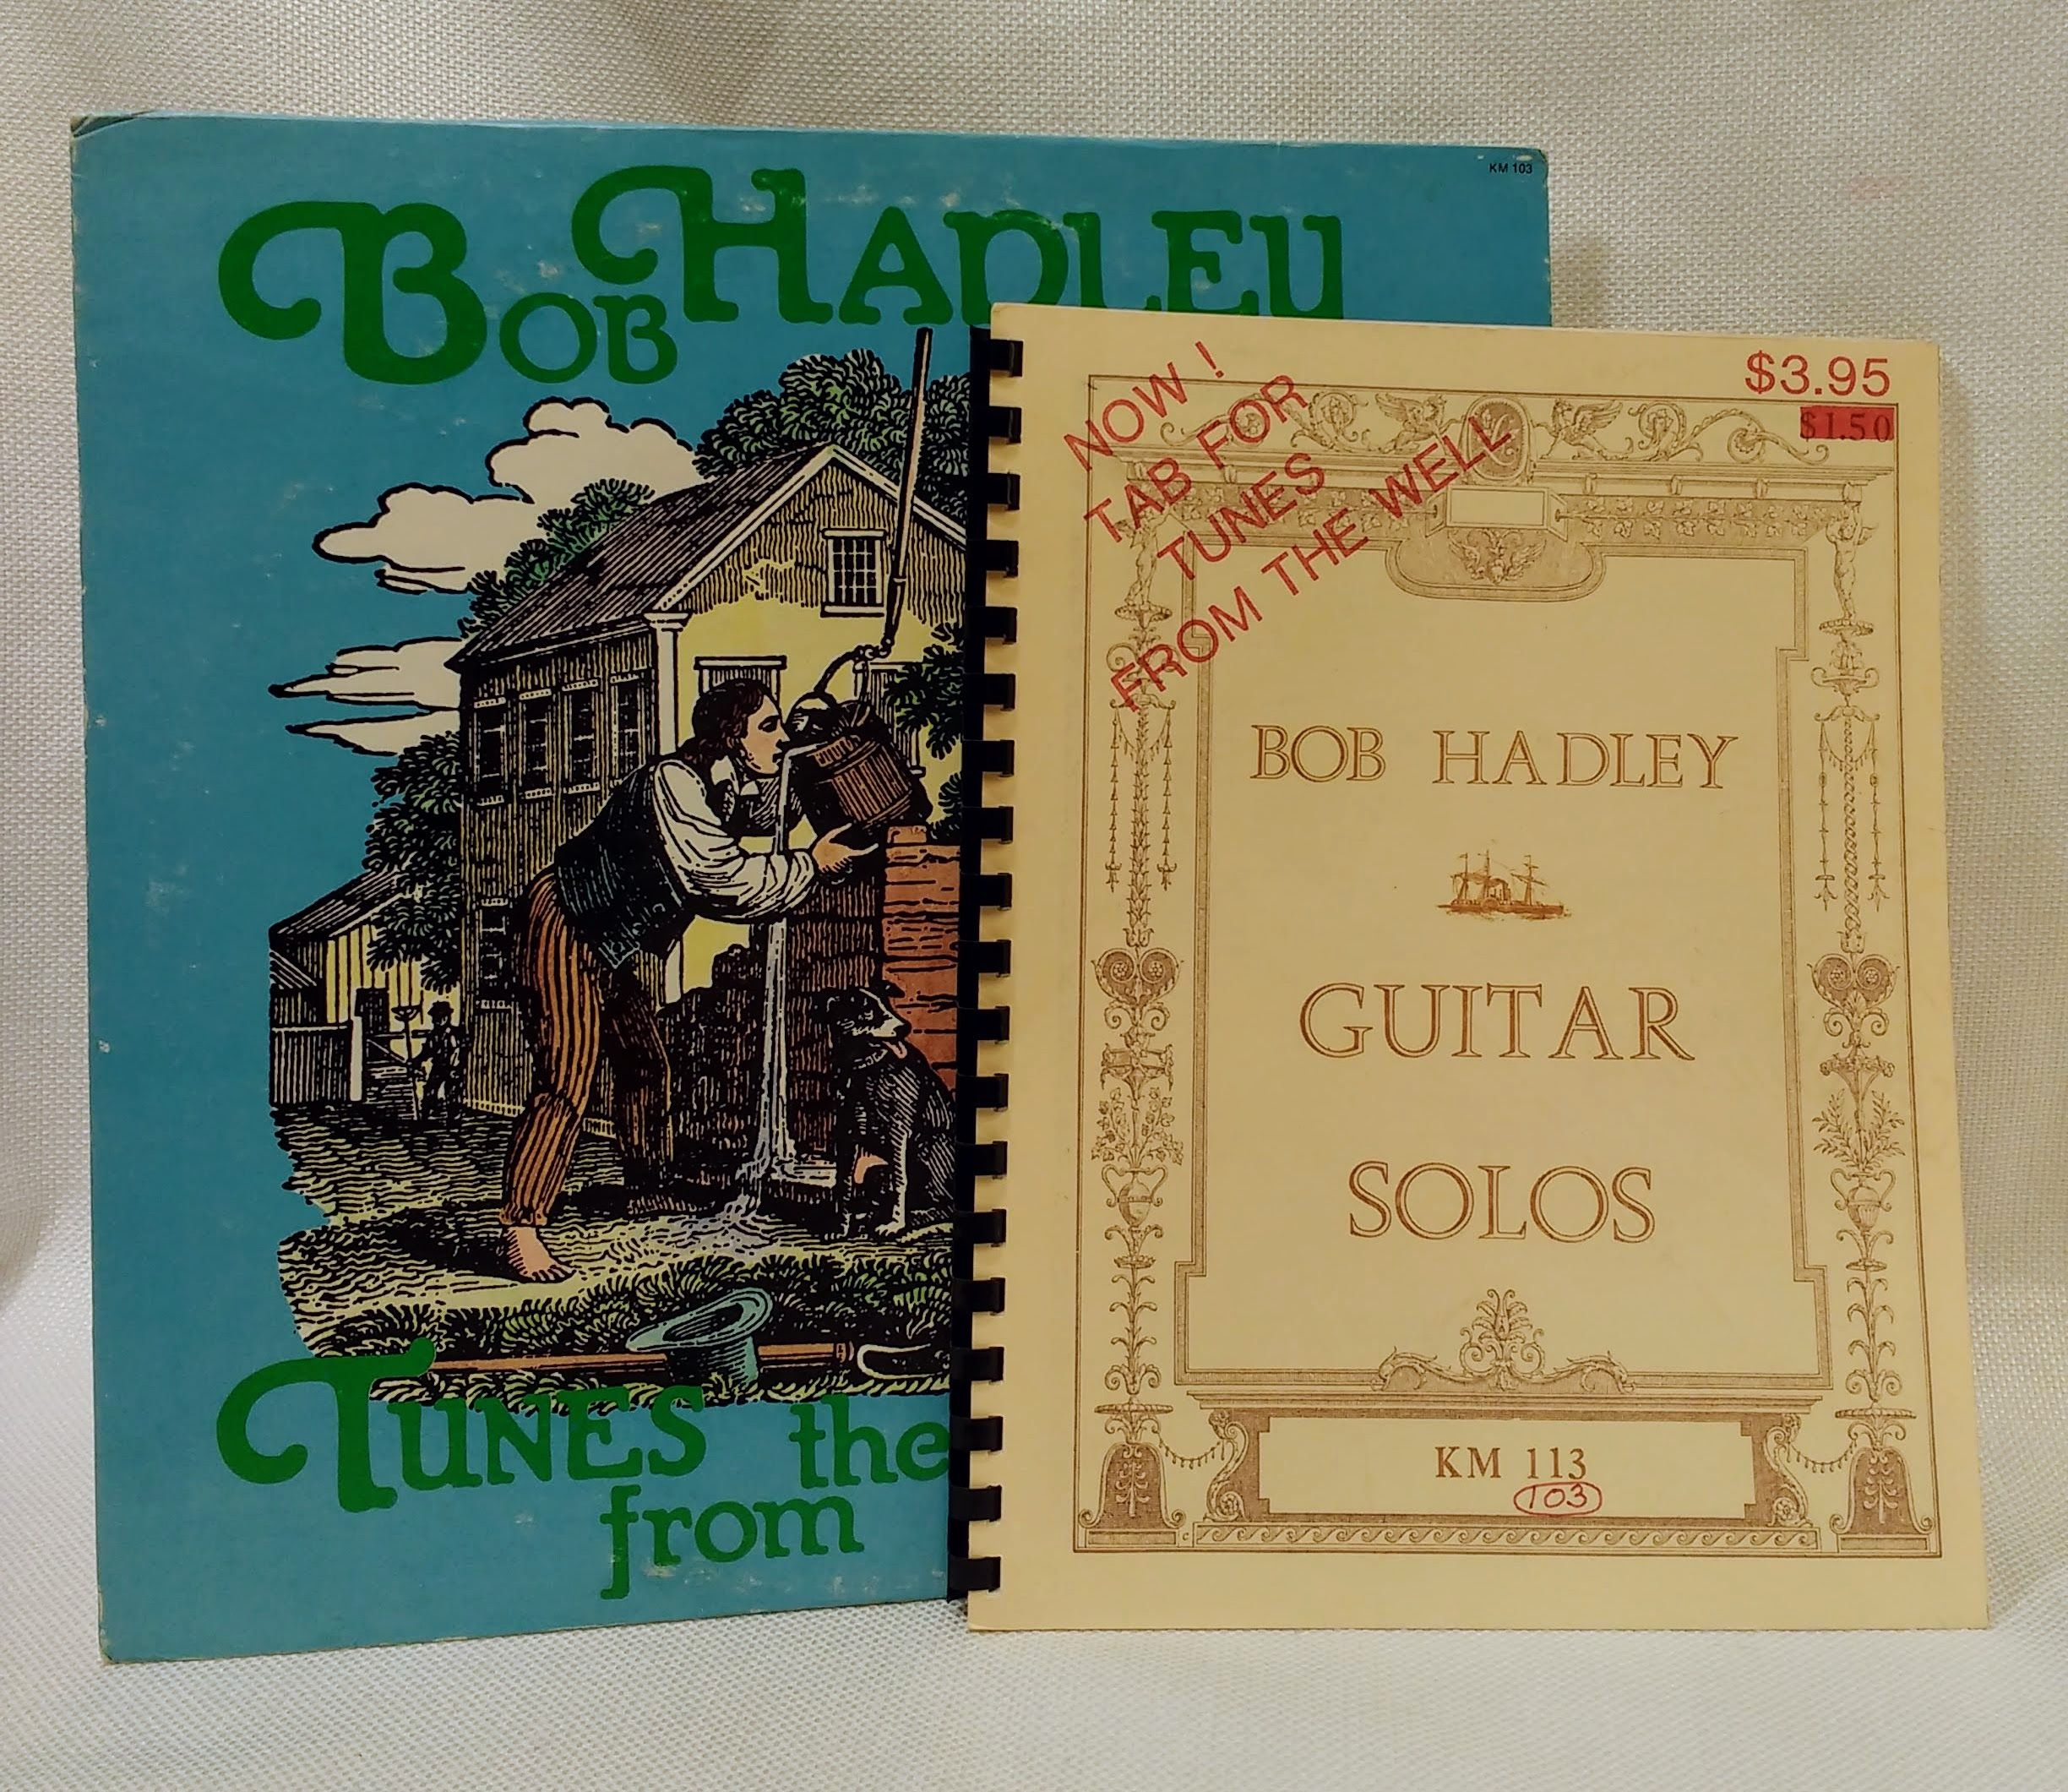 Tunes from the Well [Vinyl LP and tablature book], Hadley, Bob